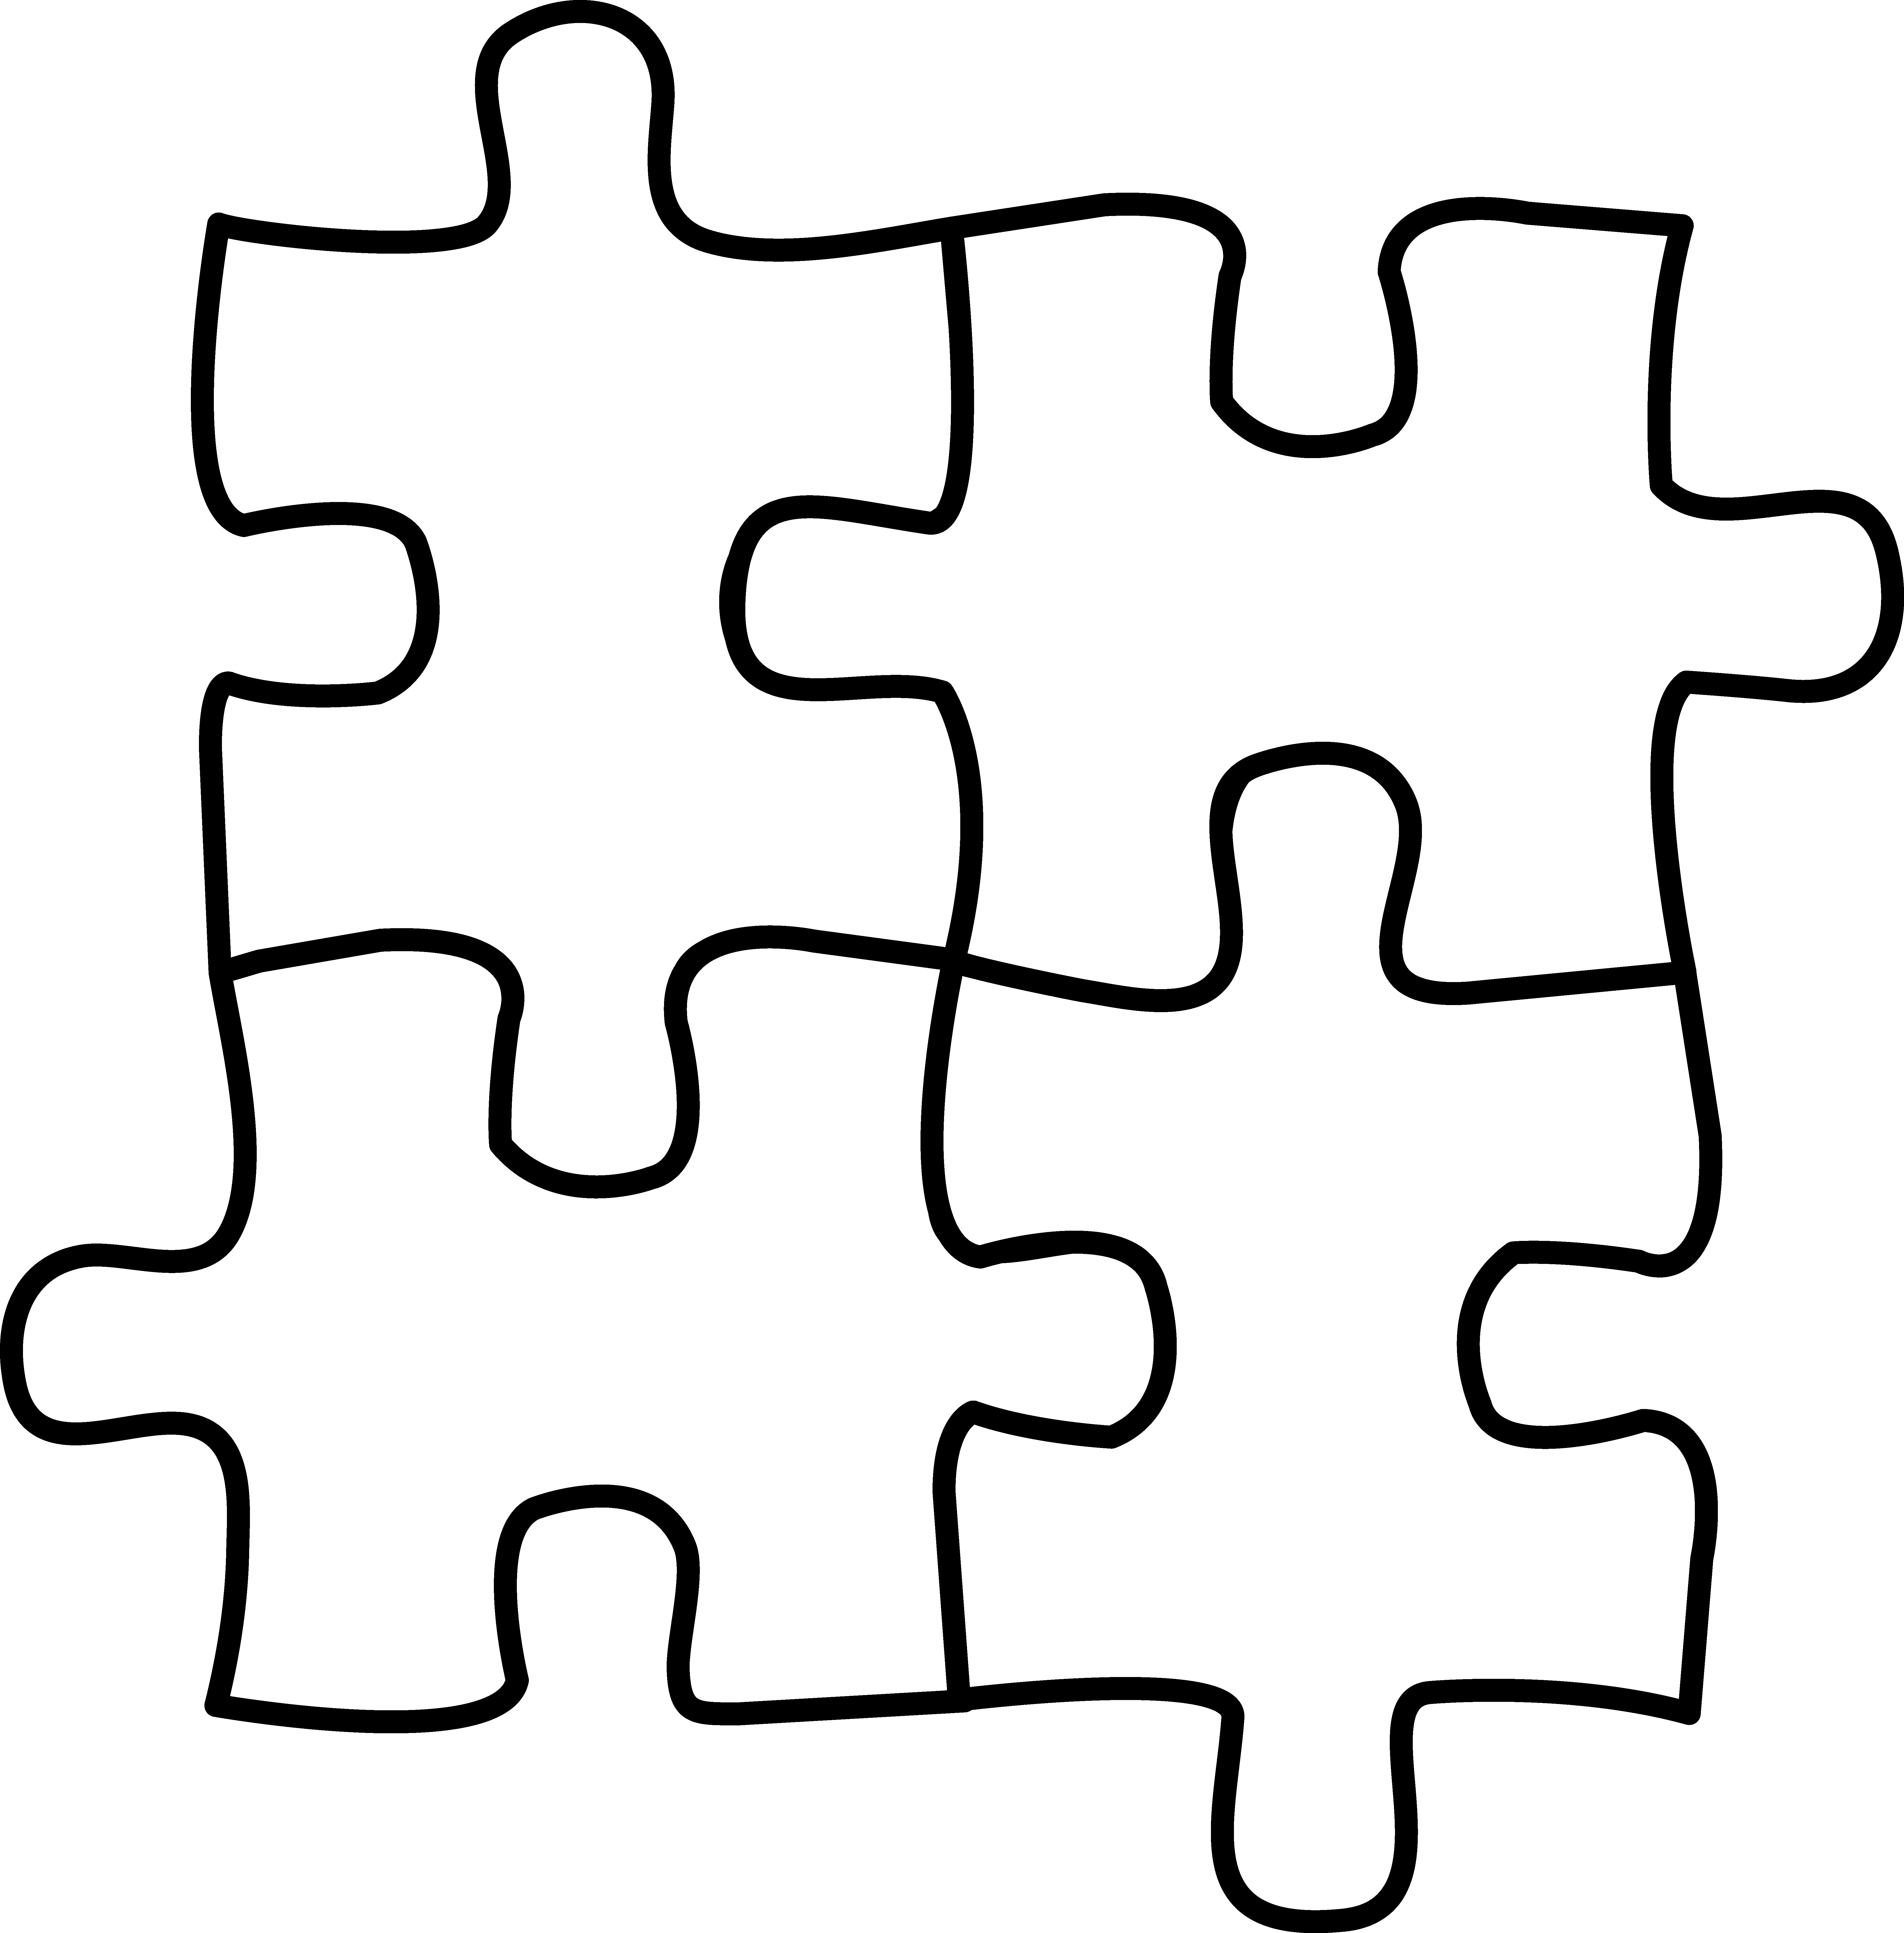 Puzzle clipart images clipart panda free clipart images for Drawing websites no download